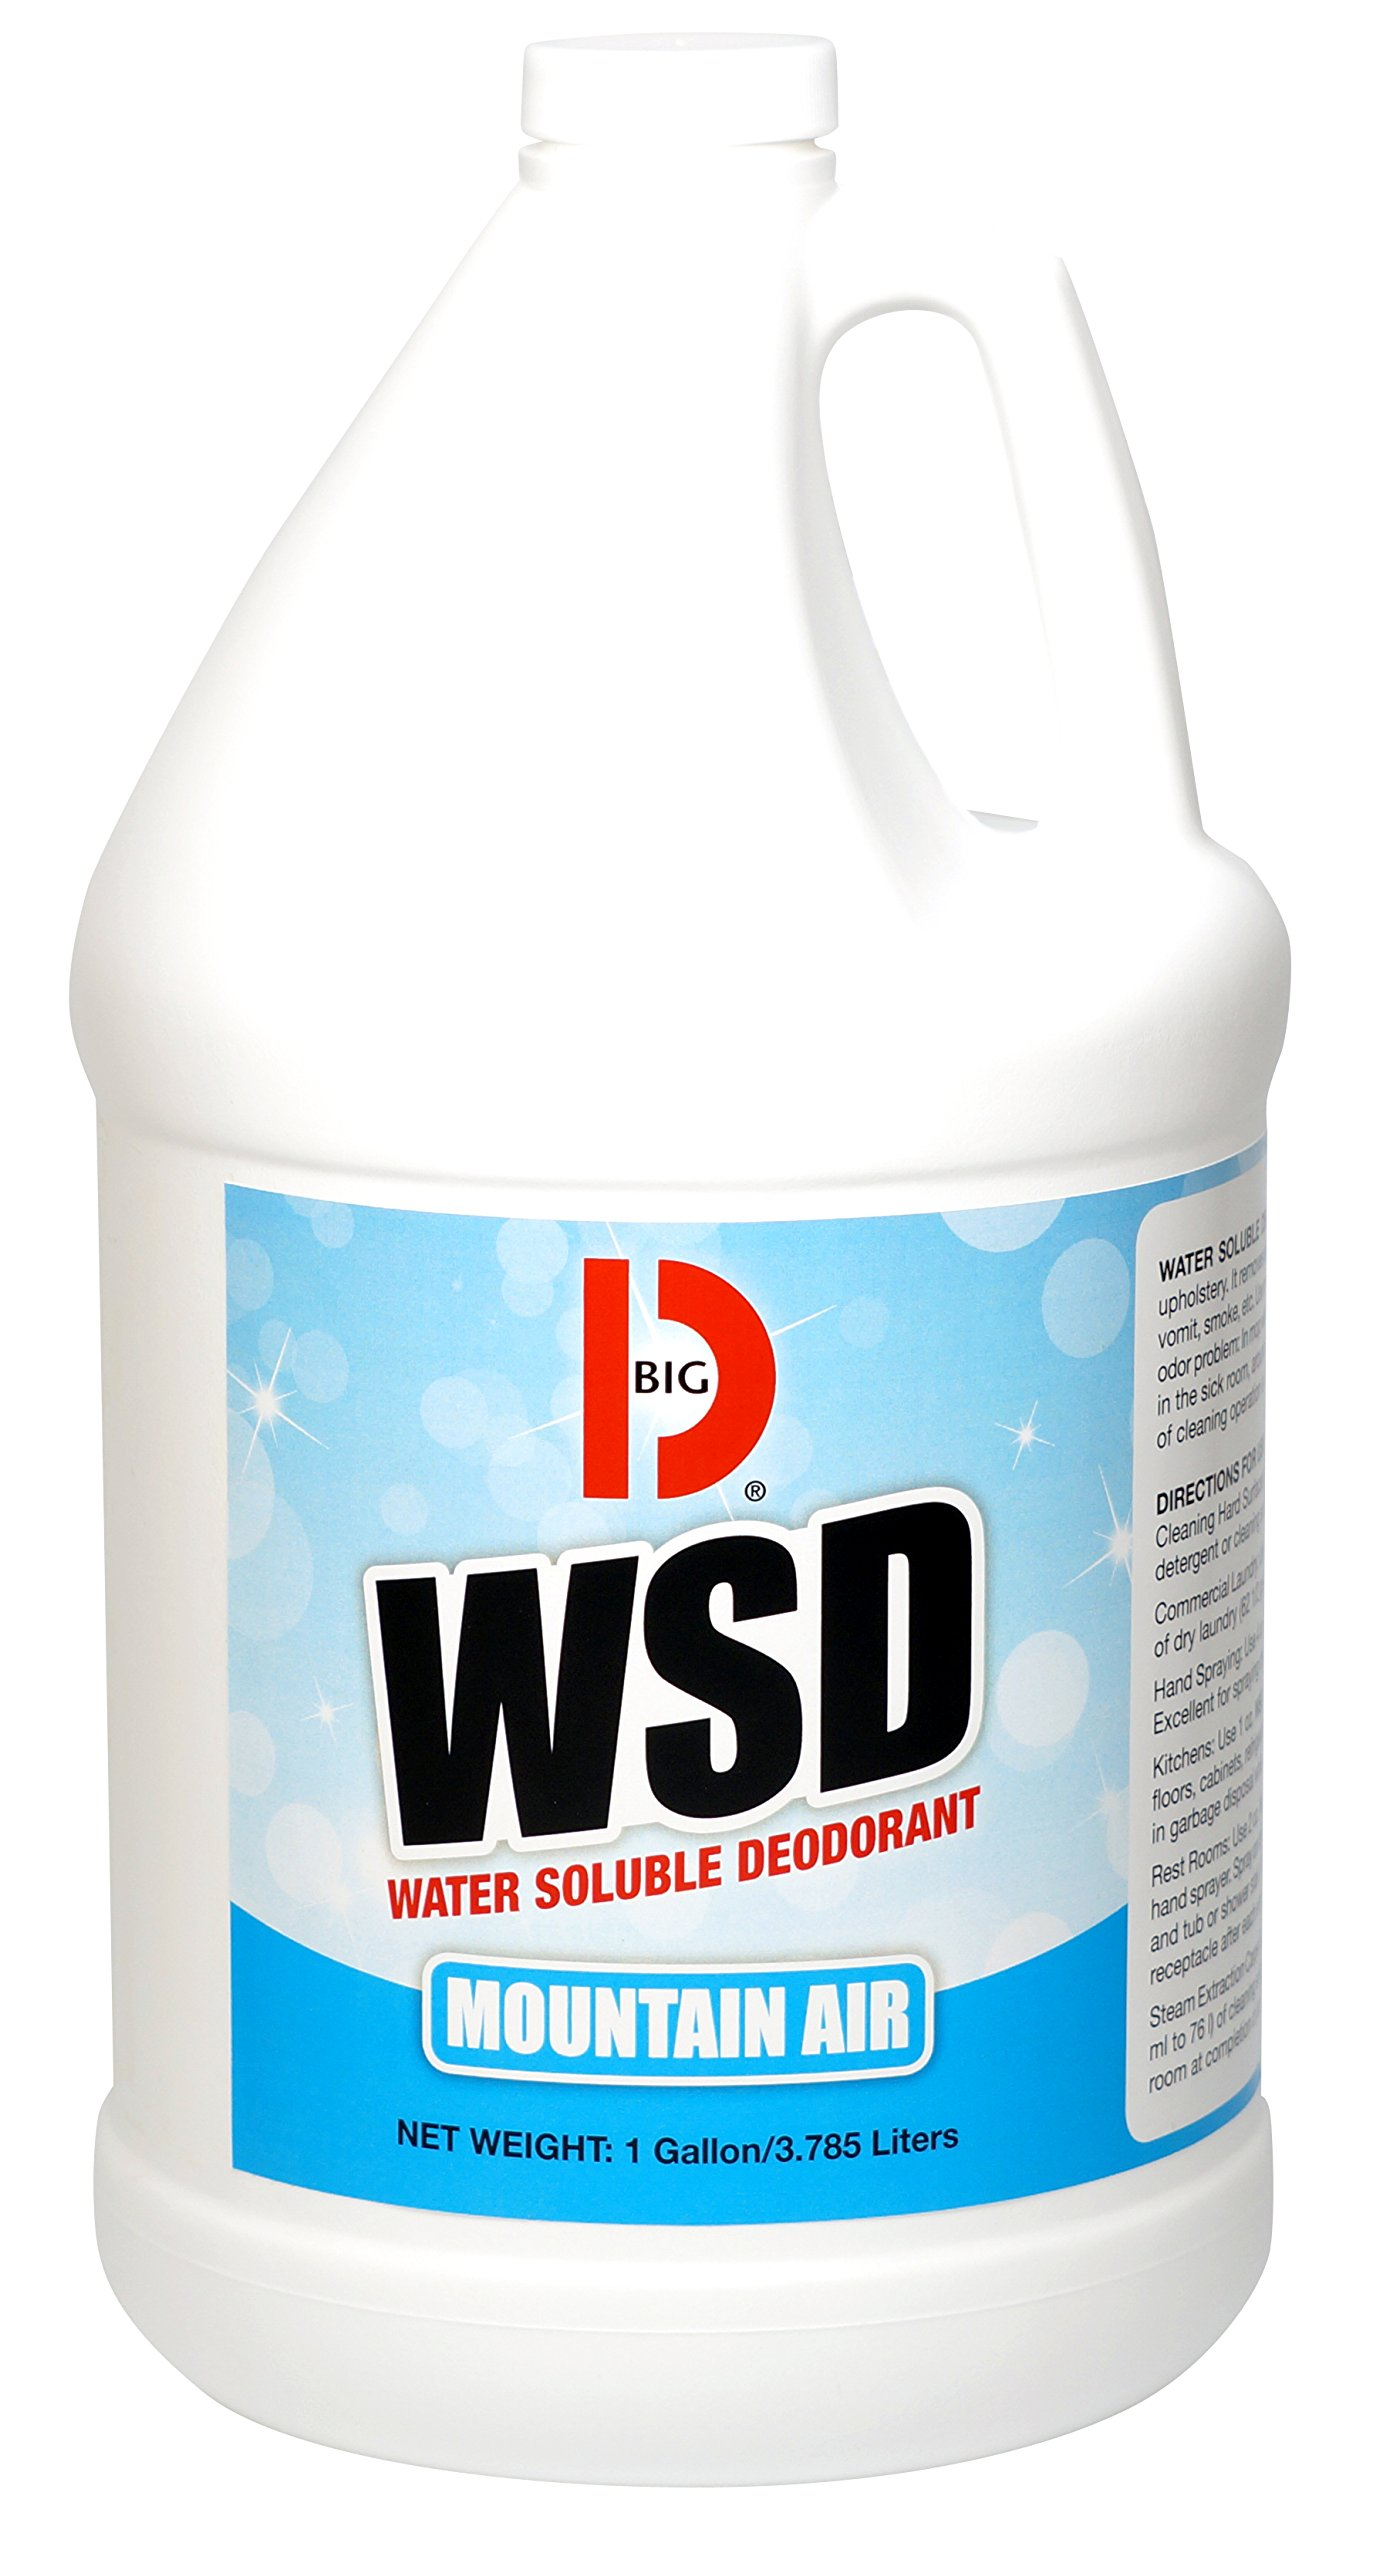 Big D 1358 Water Soluble Deodorant, Mountain Air Fragrance, 1 Gallon (Pack of 4) - Add to any cleaning solution - Ideal for use in hotels, food service, health care, schools and institutions